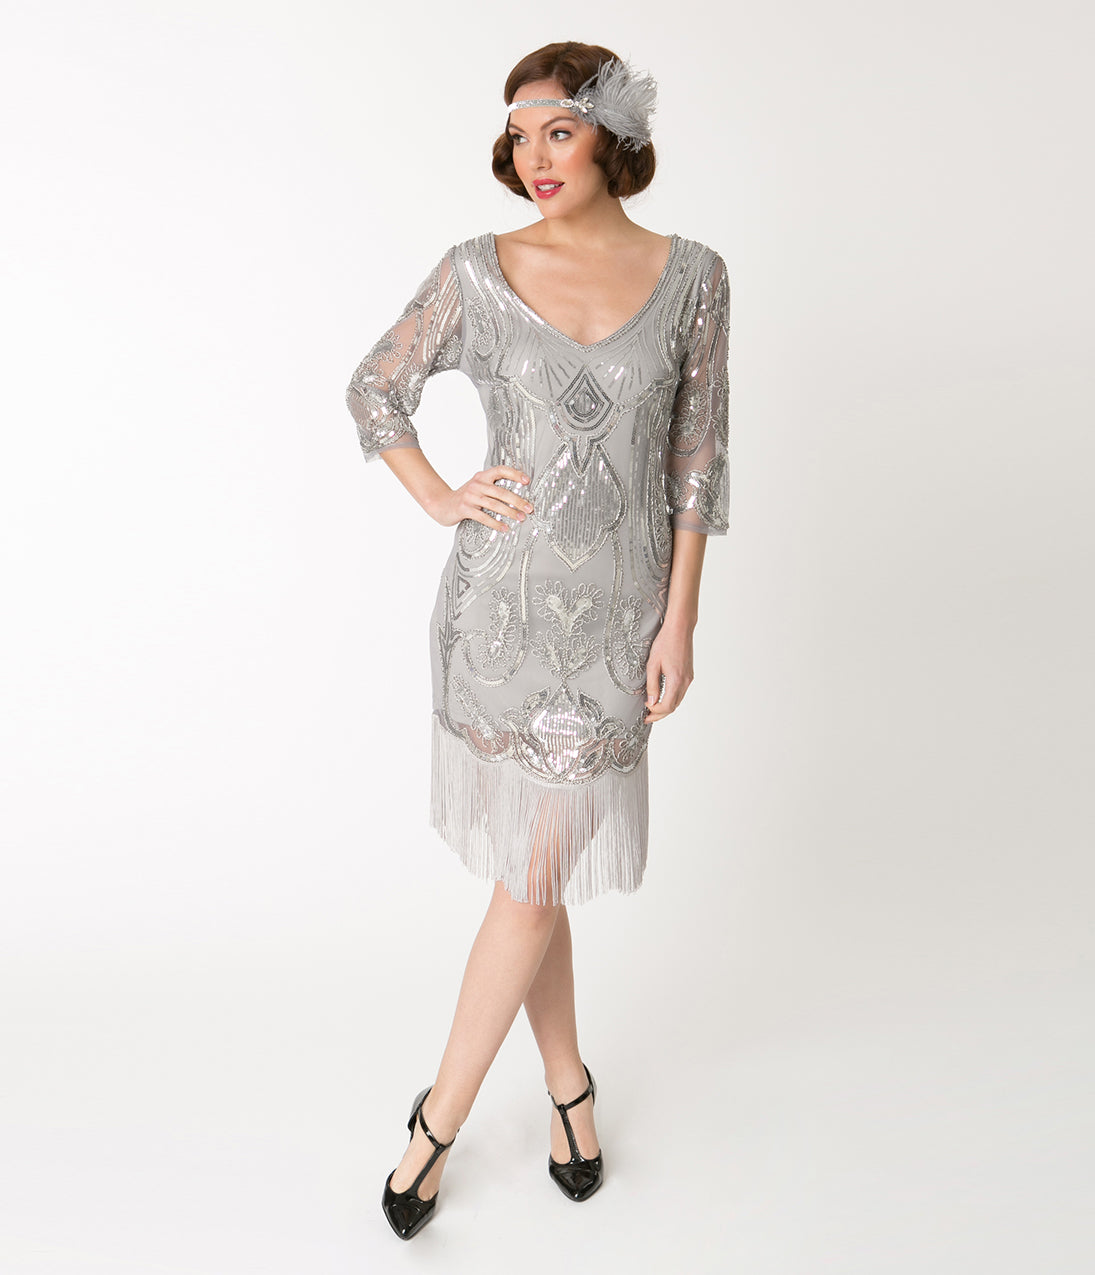 1920s Evening Dresses & Formal Gowns Unique Vintage Silver Sequin Margaux Sleeved Fringe Flapper Dress $51.00 AT vintagedancer.com